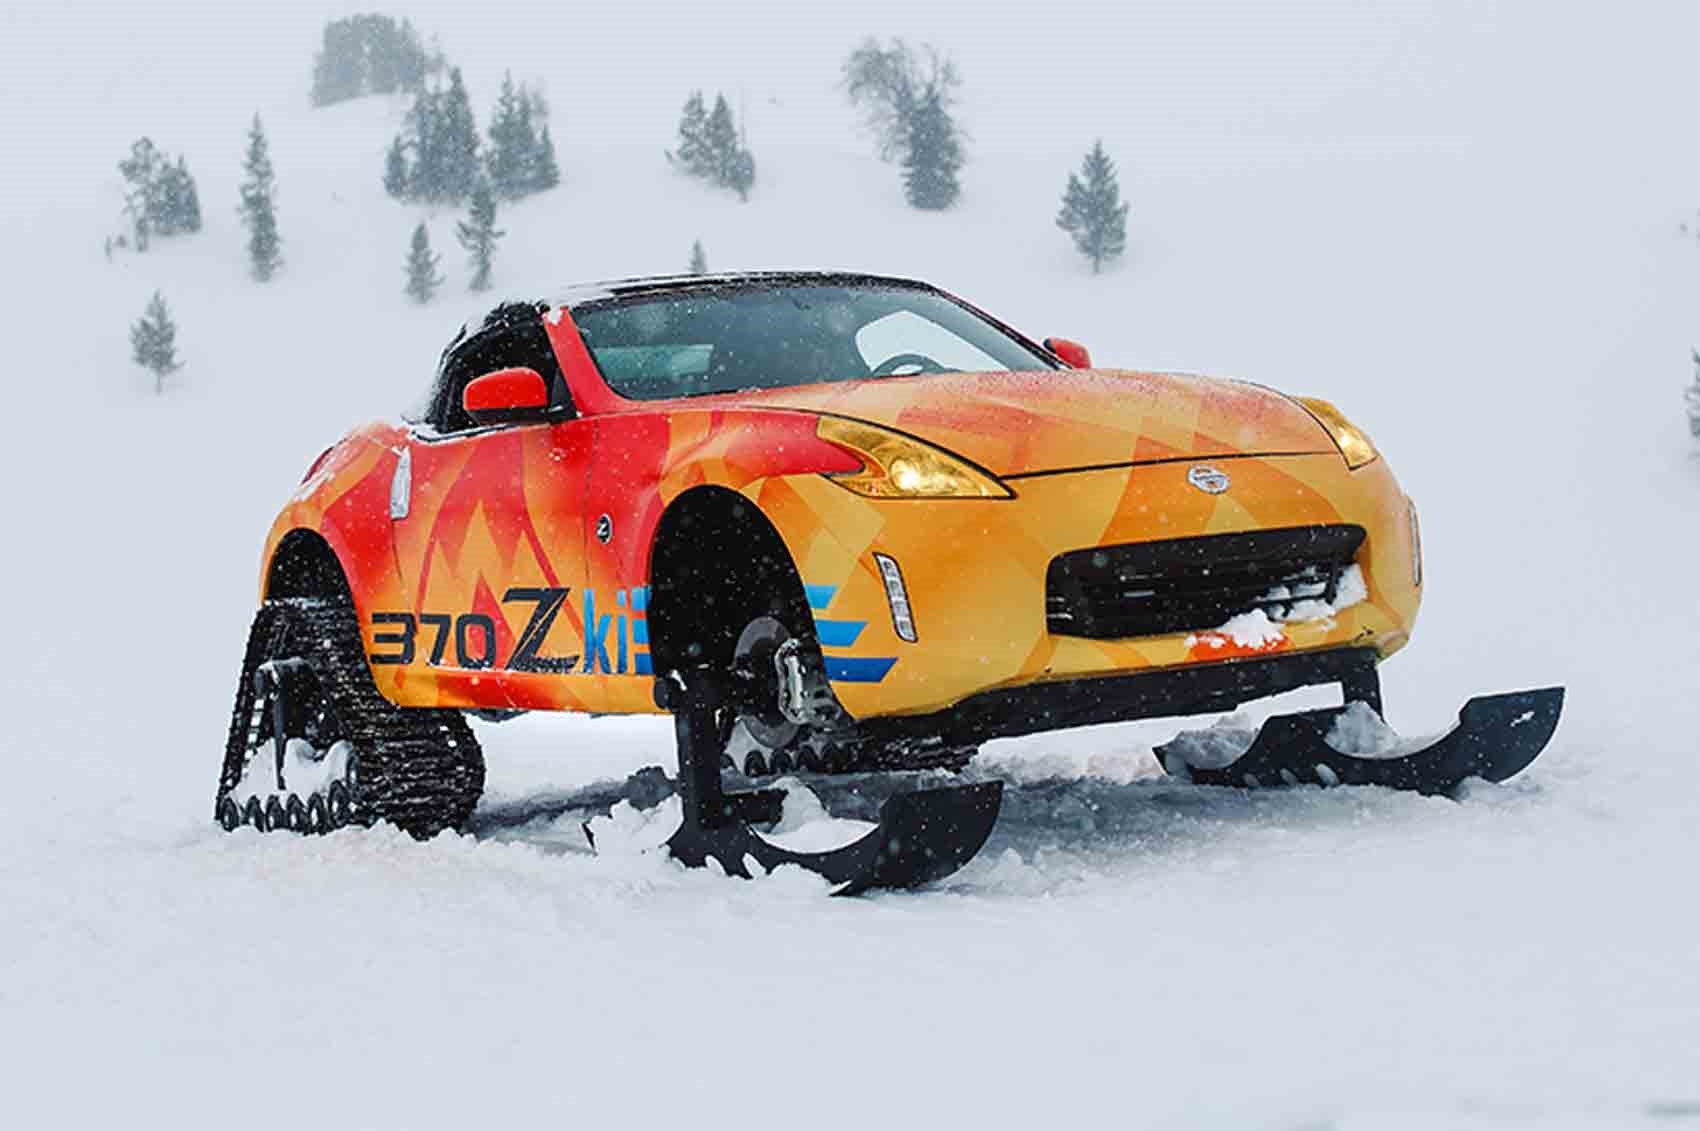 Nissan 370Zki revealed in Chicago Snowmobile with an open-top twist